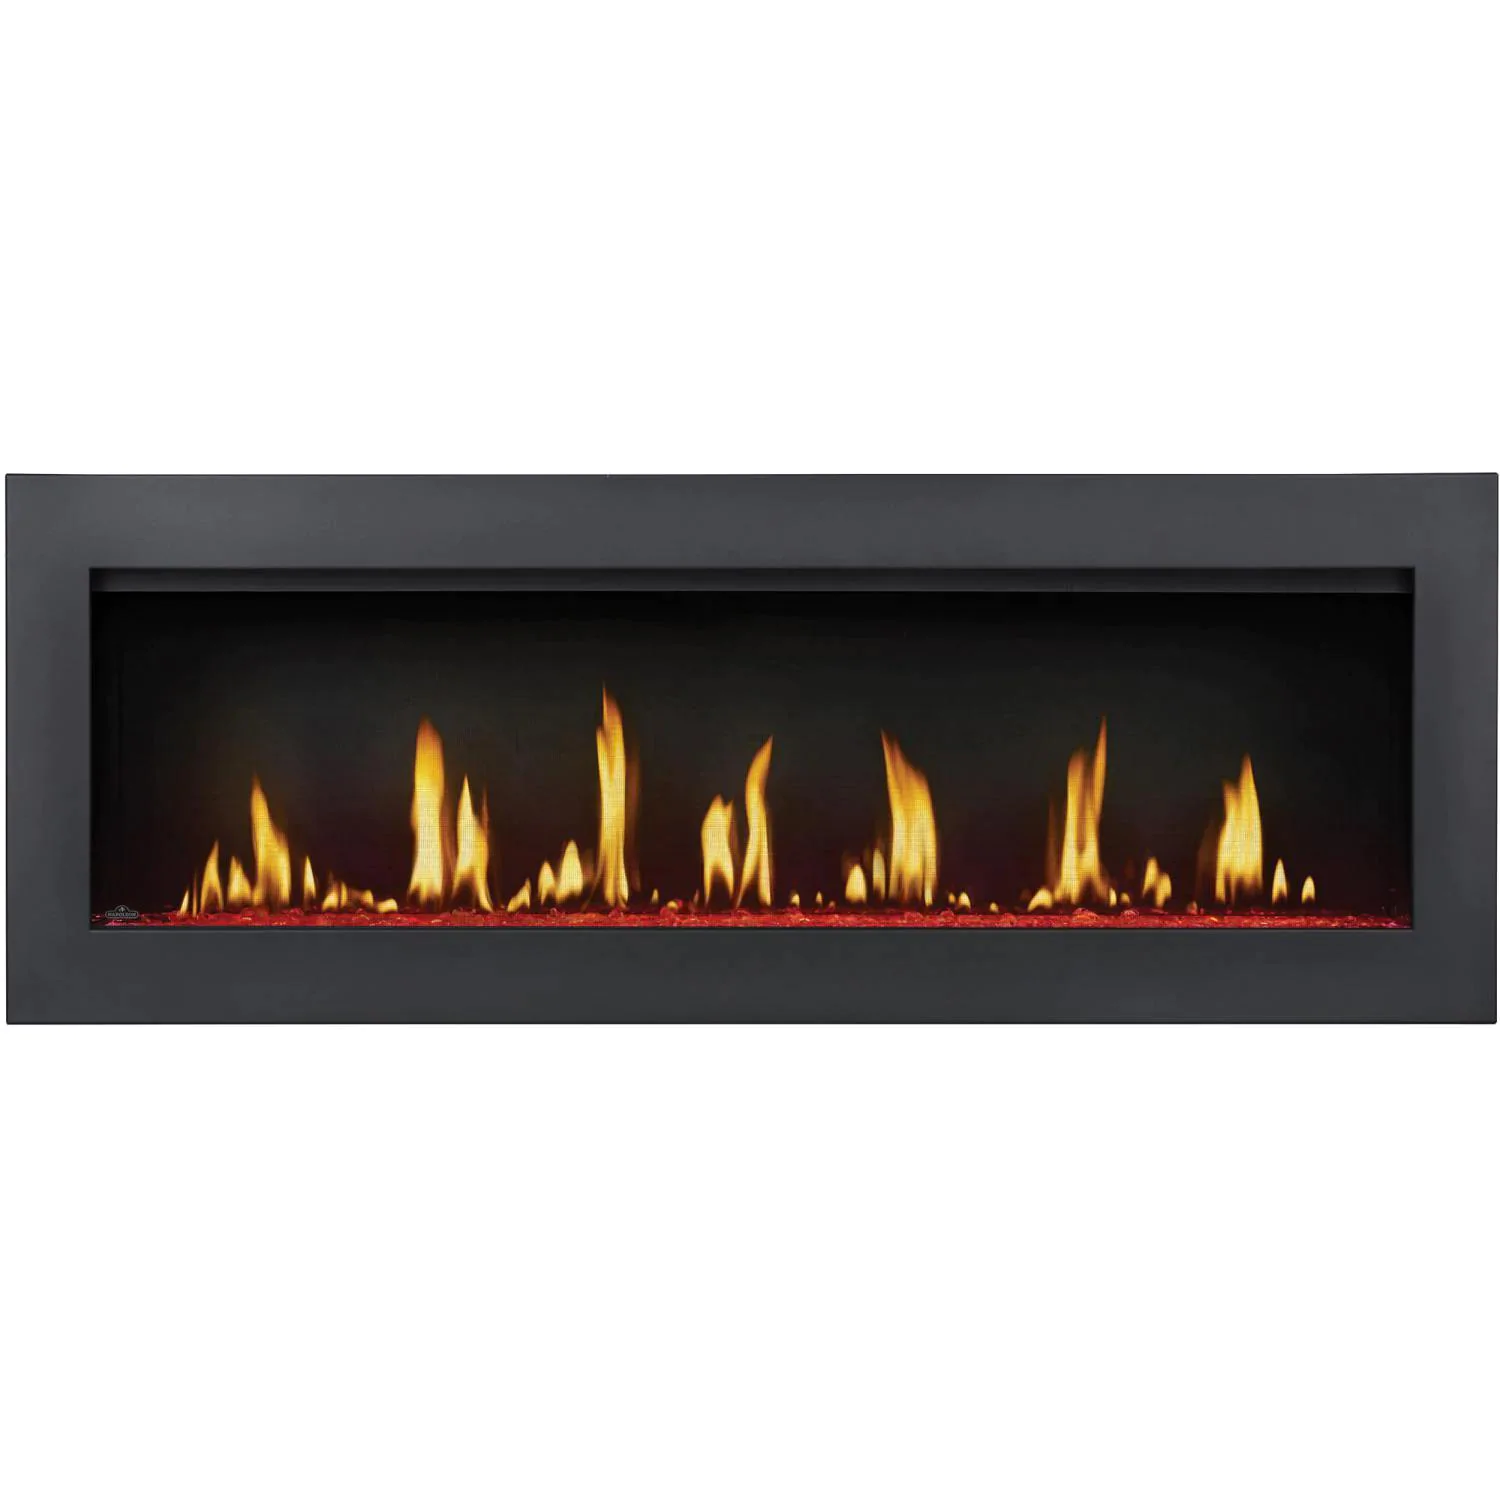 Napoleon Vector 50 Built-In Direct Vent Natural Gas Fireplace W/ Electronic Ignition - LV50N-2